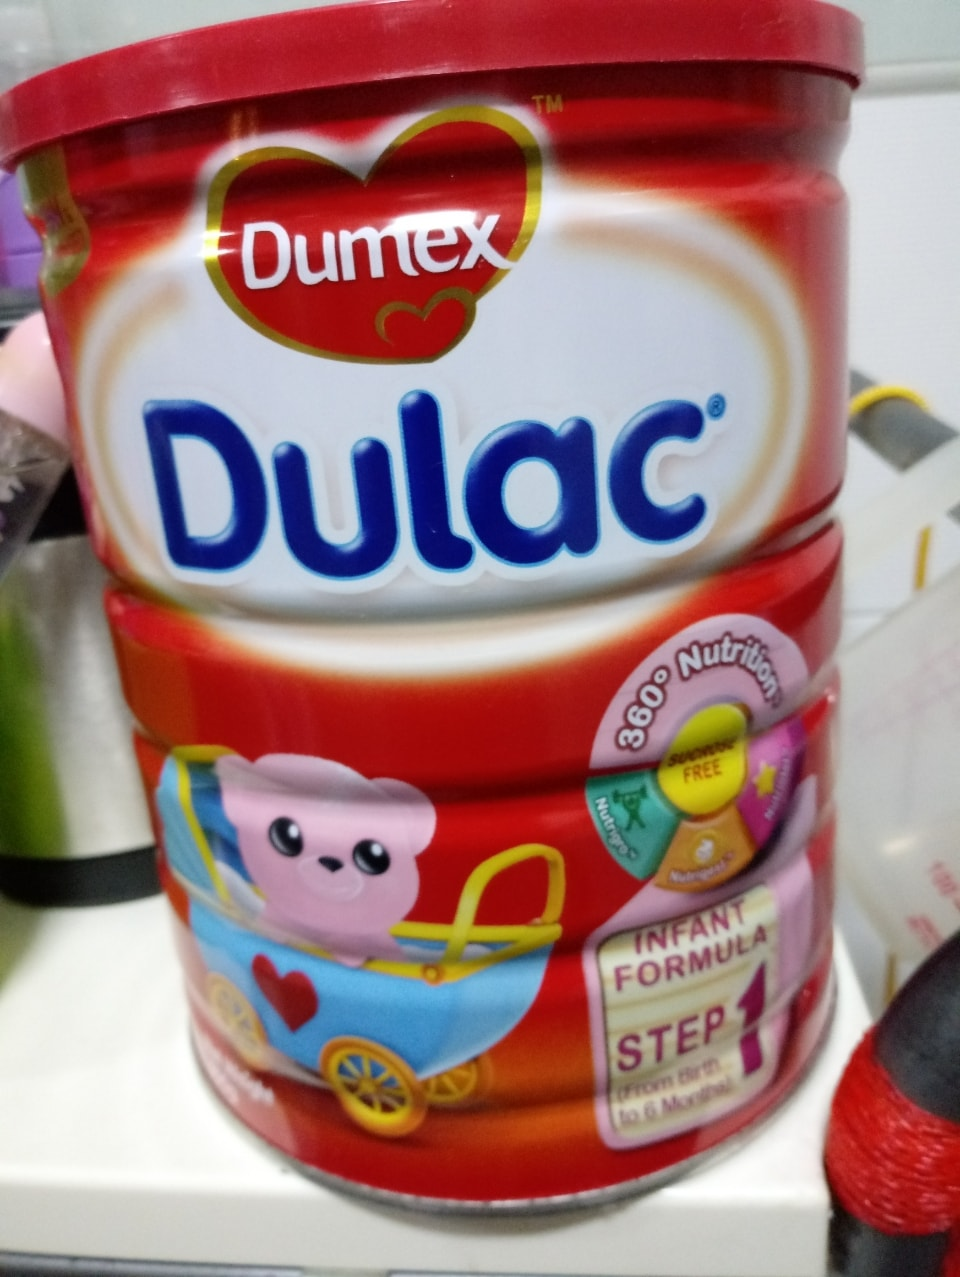 Dulac Infant Formula (birth to 6 months)